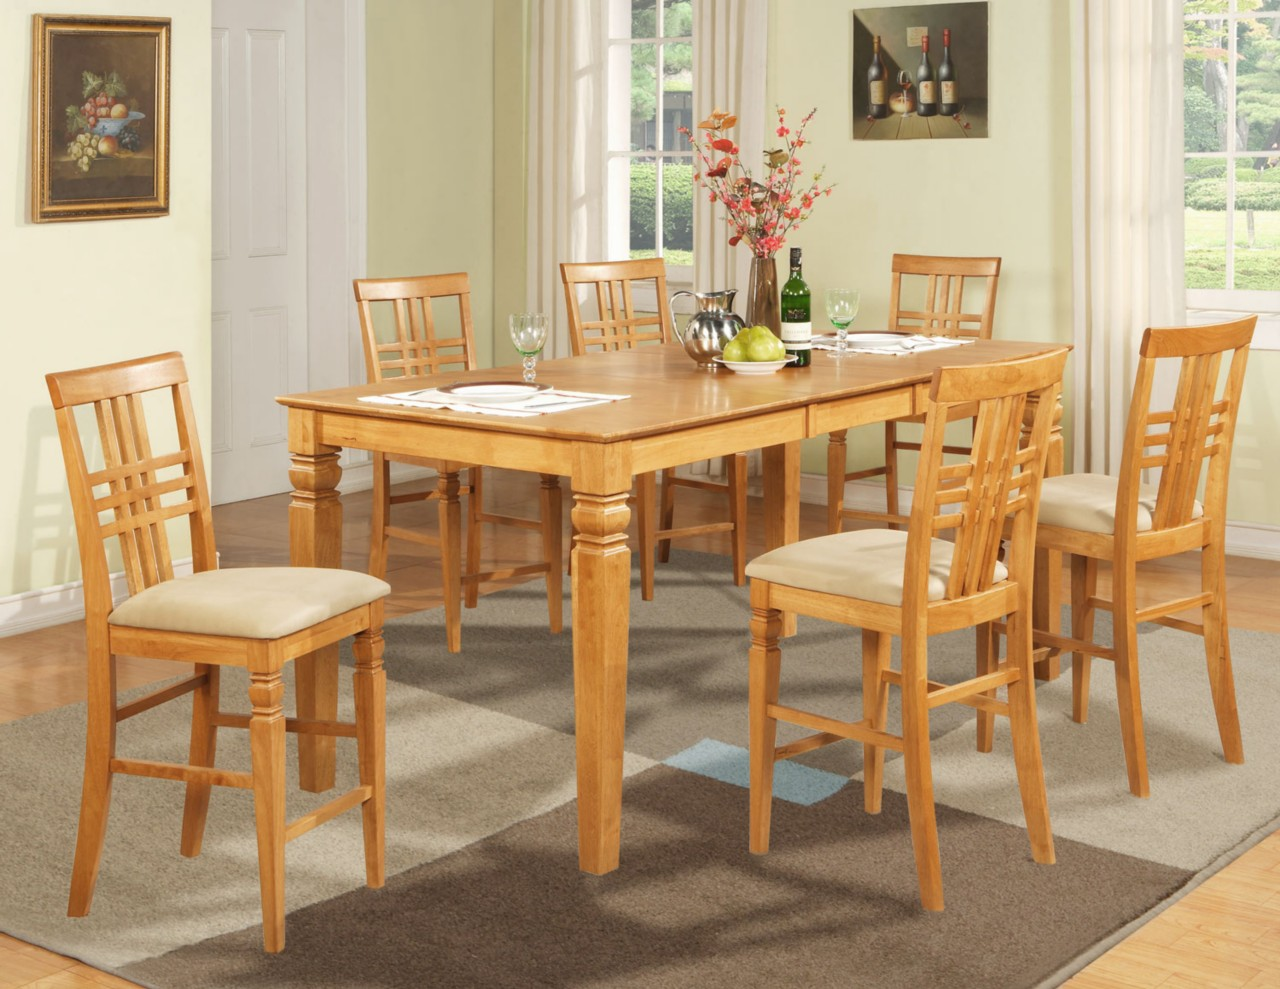 5PC COUNTER HEIGHT DINING ROOM TABLE SET amp 4 BAR STOOLS eBay : 481368547o from ebay.com size 1280 x 989 jpeg 252kB